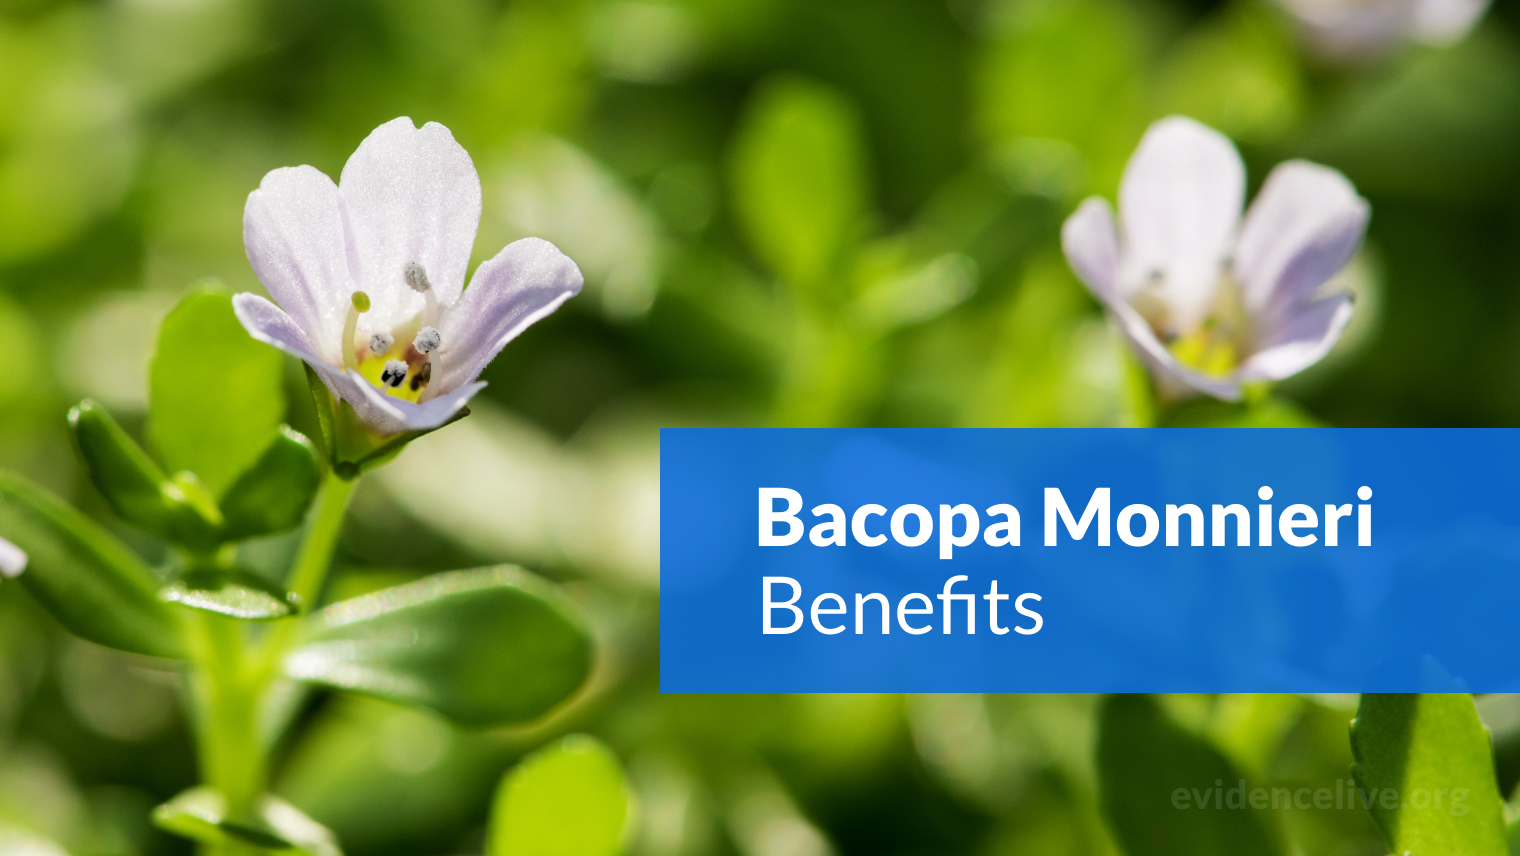 Bacopa Monnieri Benefits: What Is This Nootropic Used For?